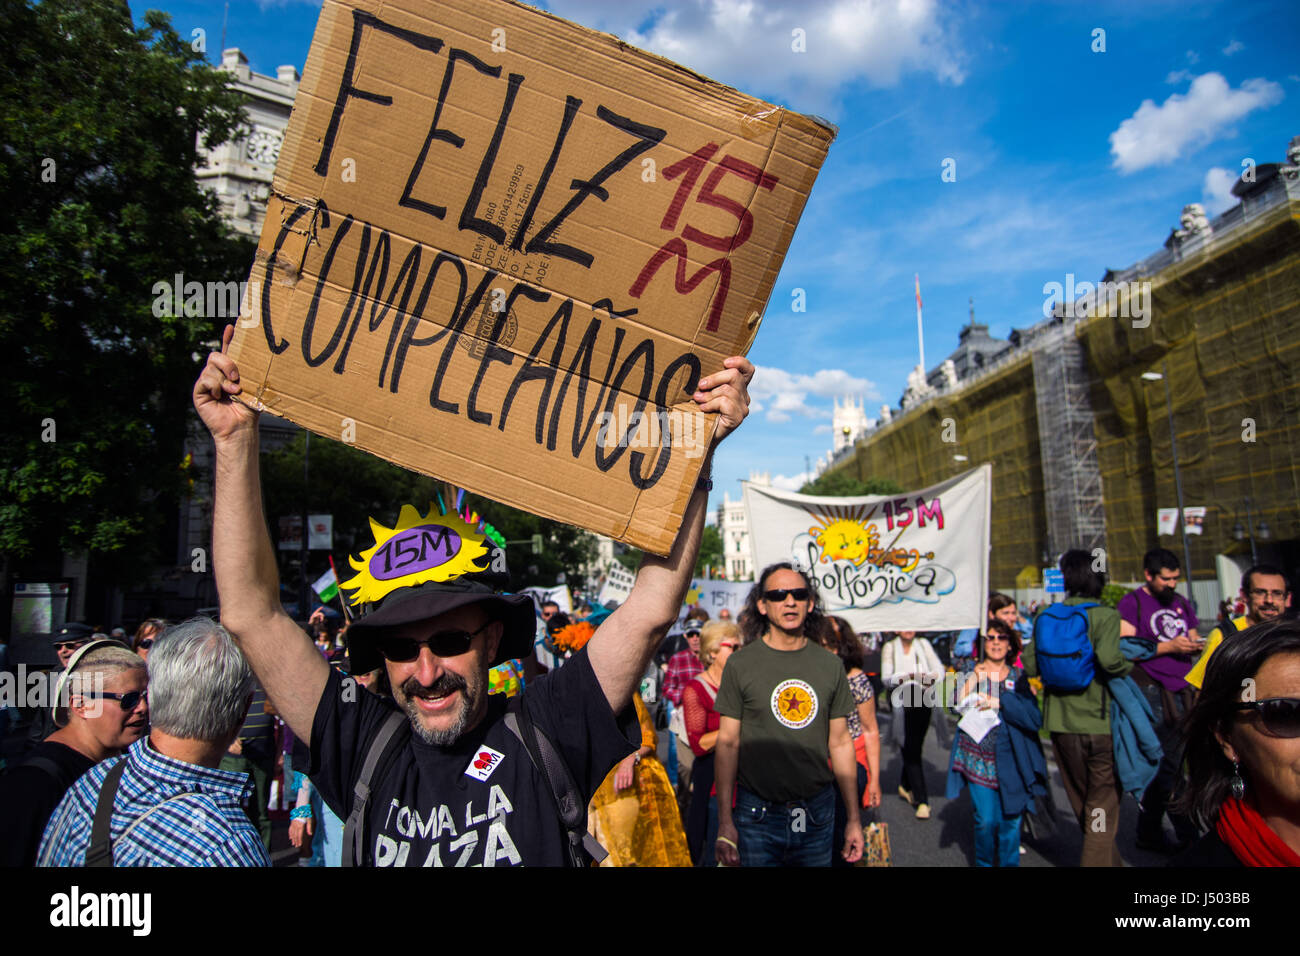 """Madrid, Spain. 14th May, 2017. A man with a placard that reads """"Happy birthday 15M"""" during a demonstration for the Stock Photo"""